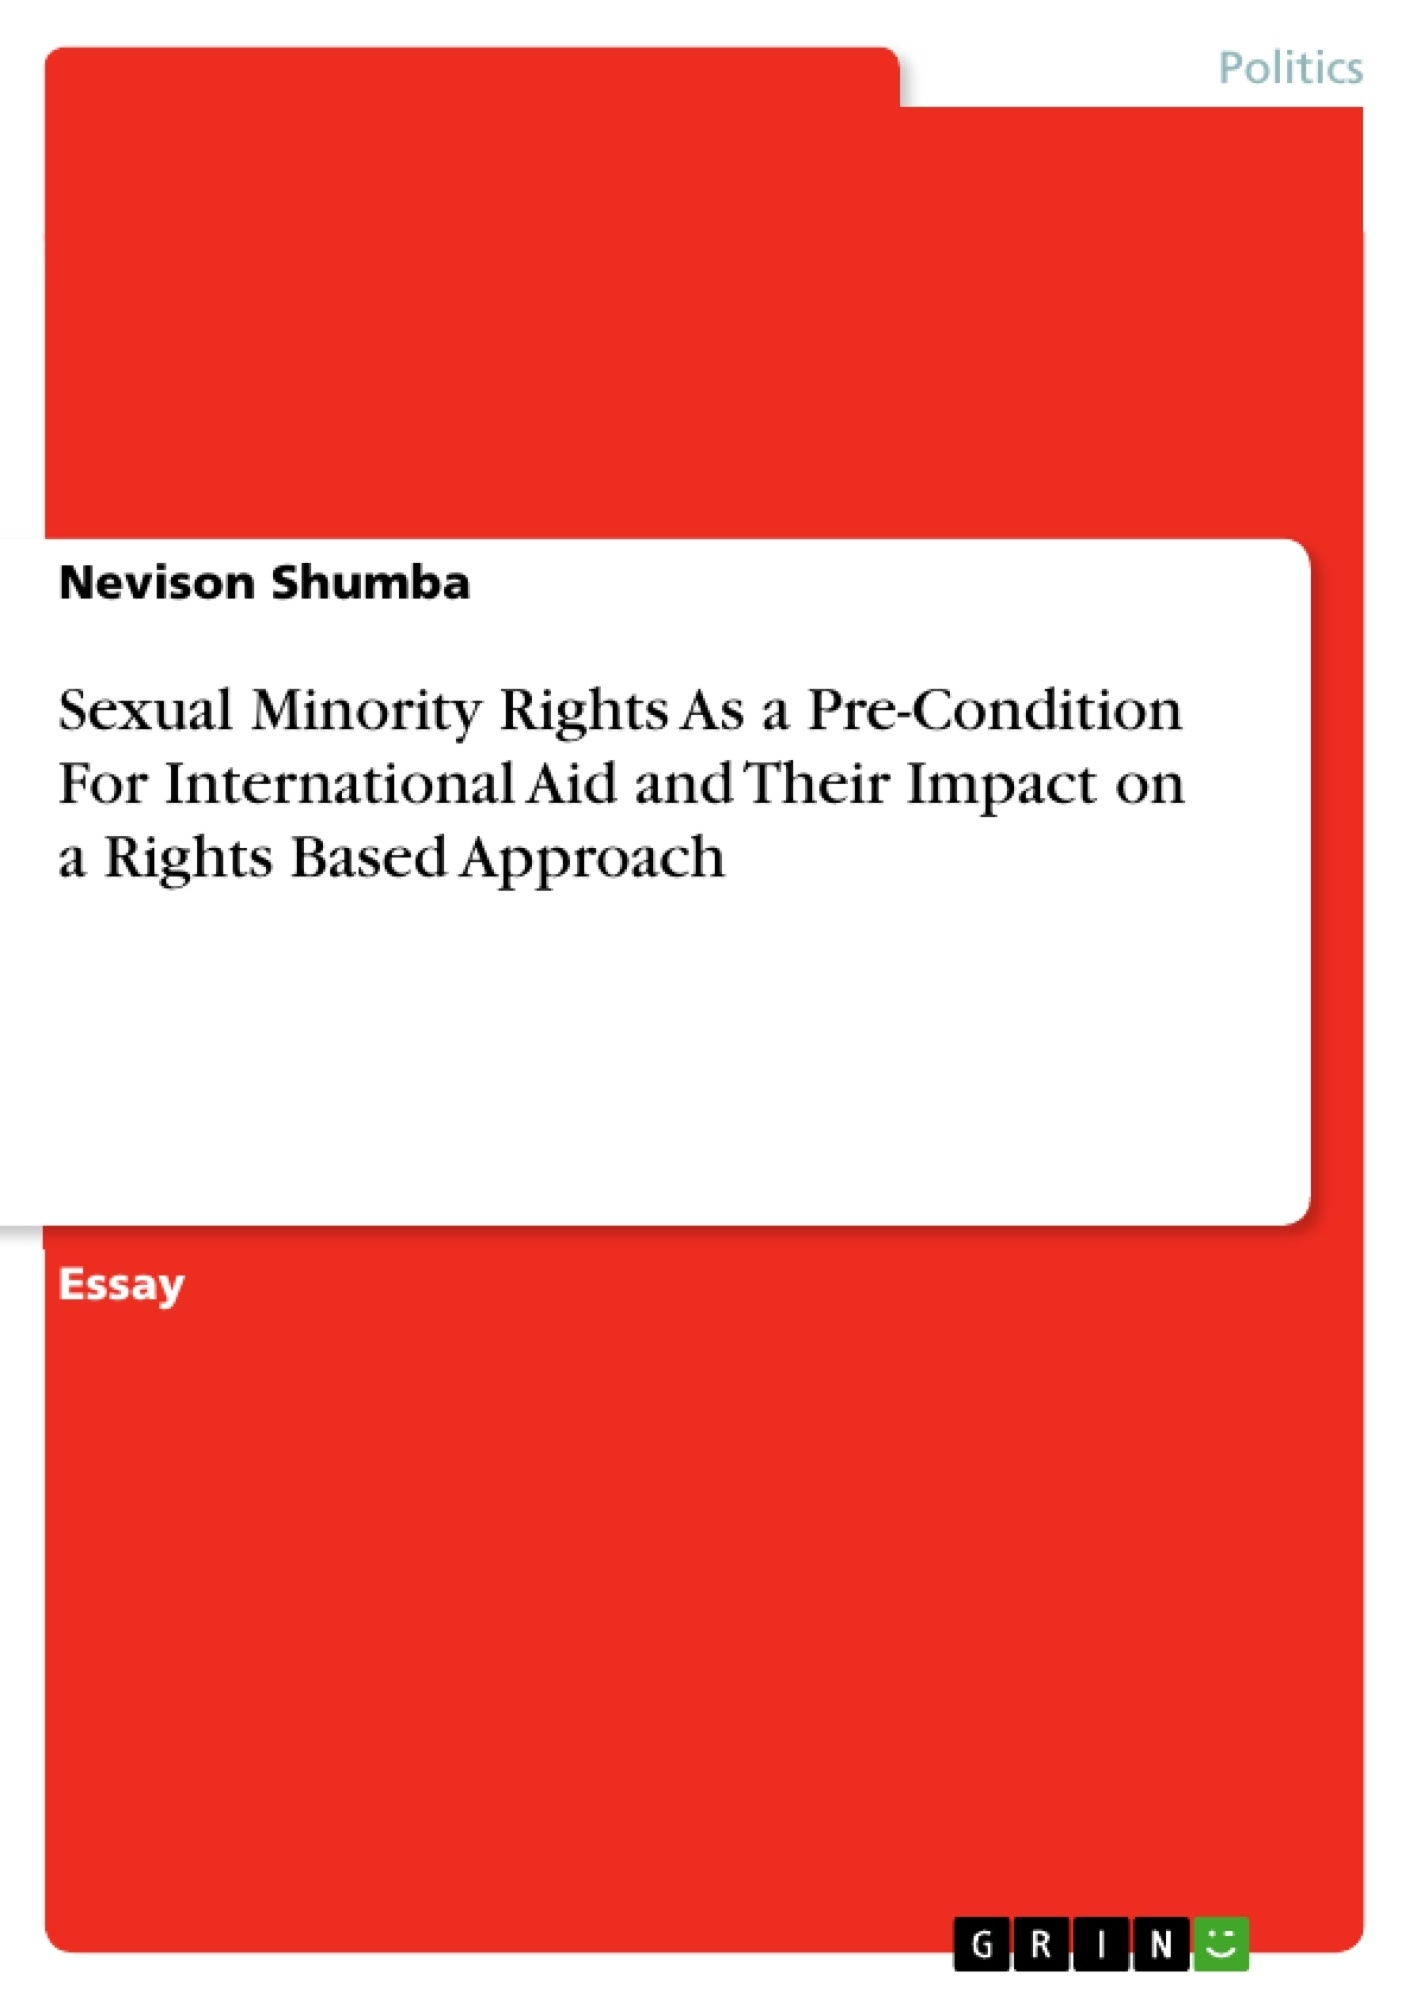 Title: Sexual Minority Rights As a Pre-Condition For International Aid and Their Impact on a Rights Based Approach